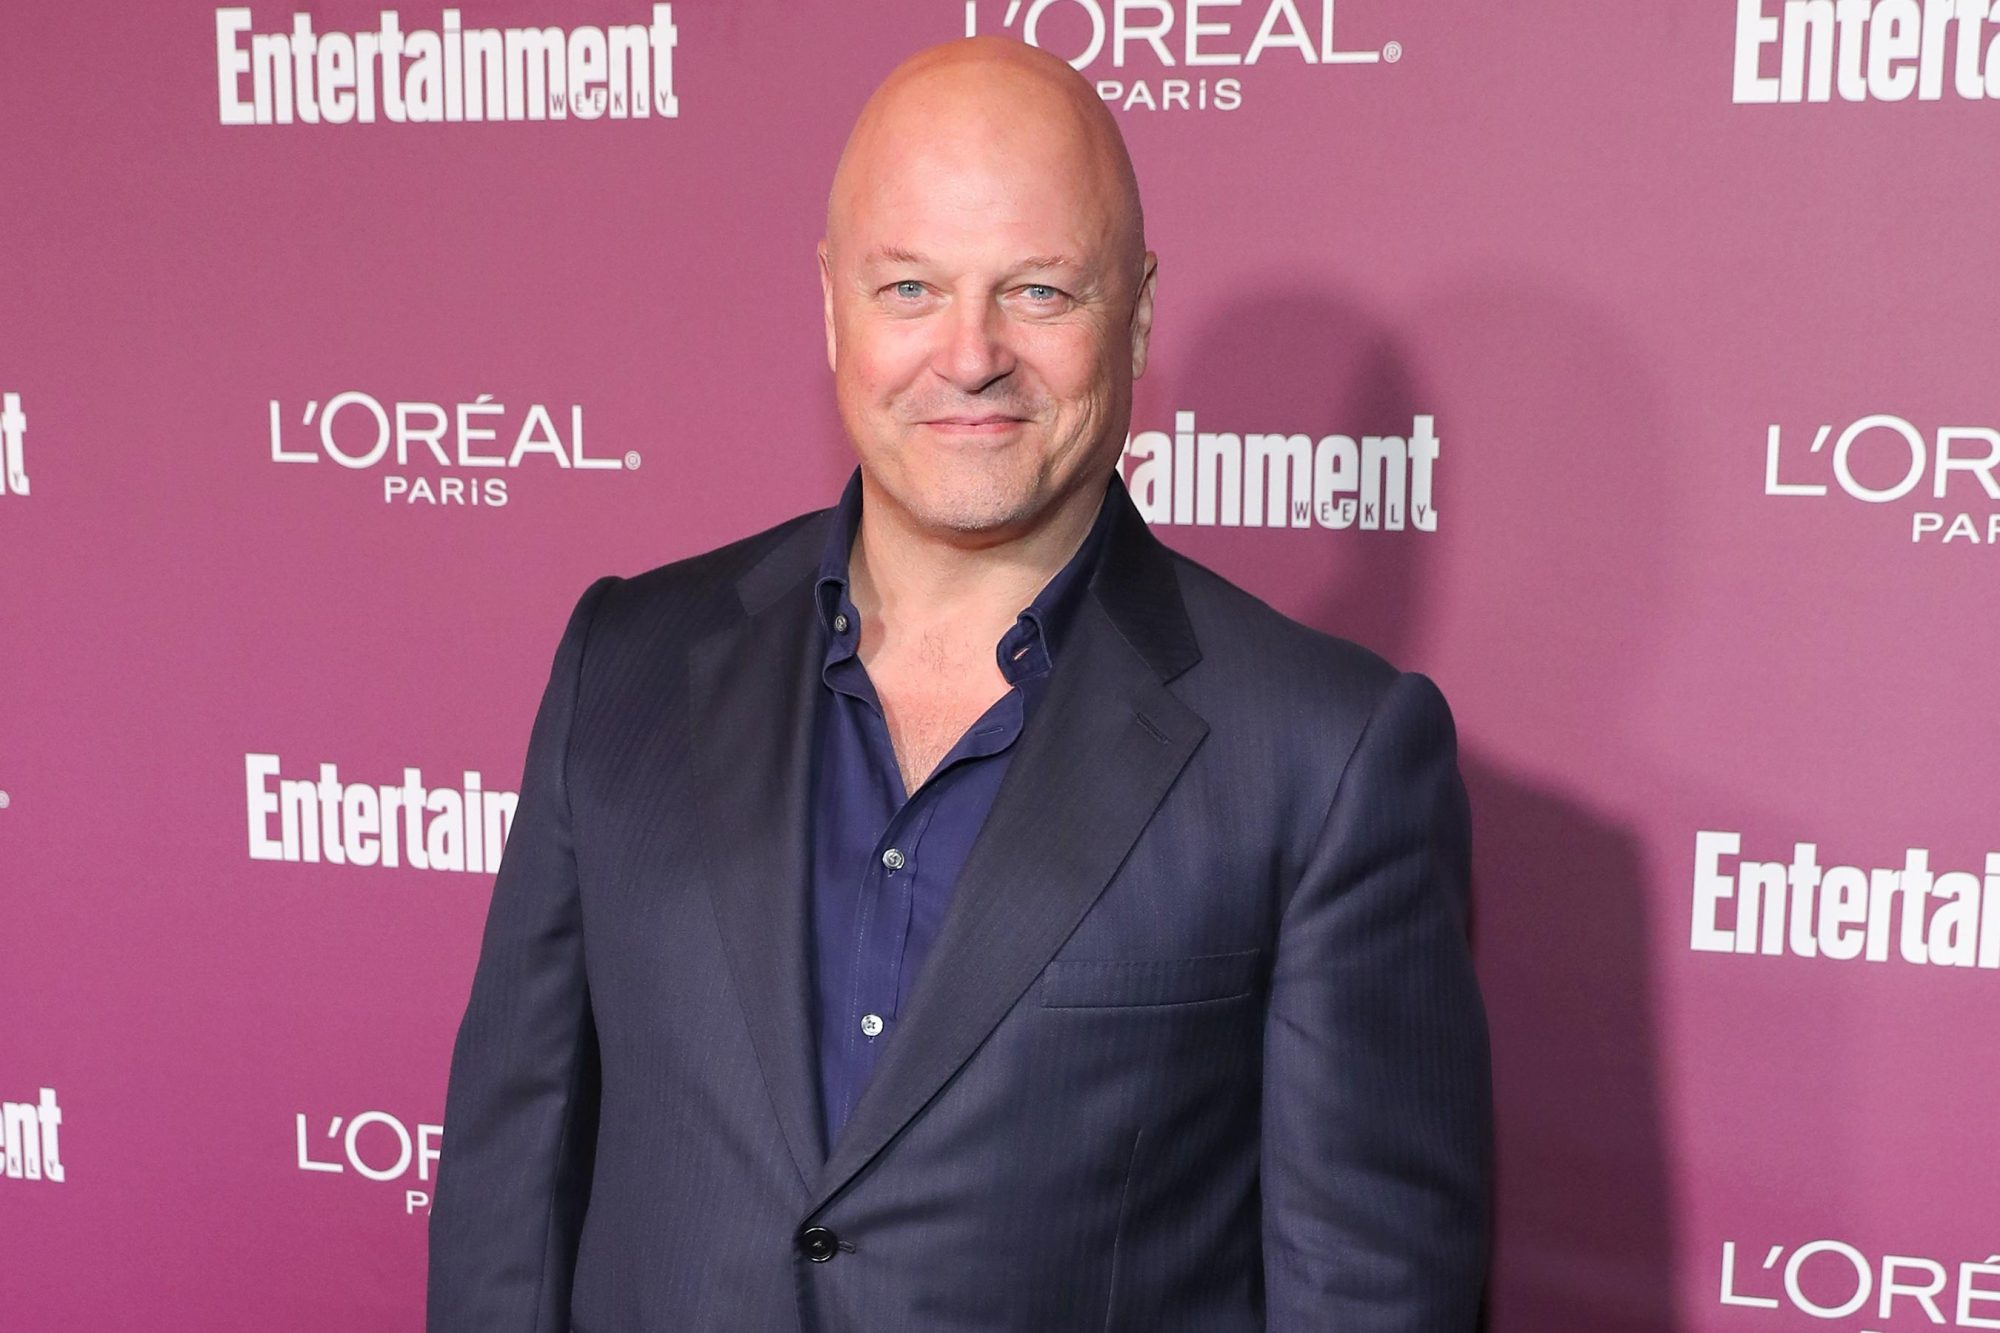 WEST HOLLYWOOD, CA - SEPTEMBER 15: Michael Chiklis attends the 2017 Entertainment Weekly Pre-Emmy Party at Sunset Tower on September 15, 2017 in West Hollywood, California. (Photo by Neilson Barnard/Getty Images for Entertainment Weekly)